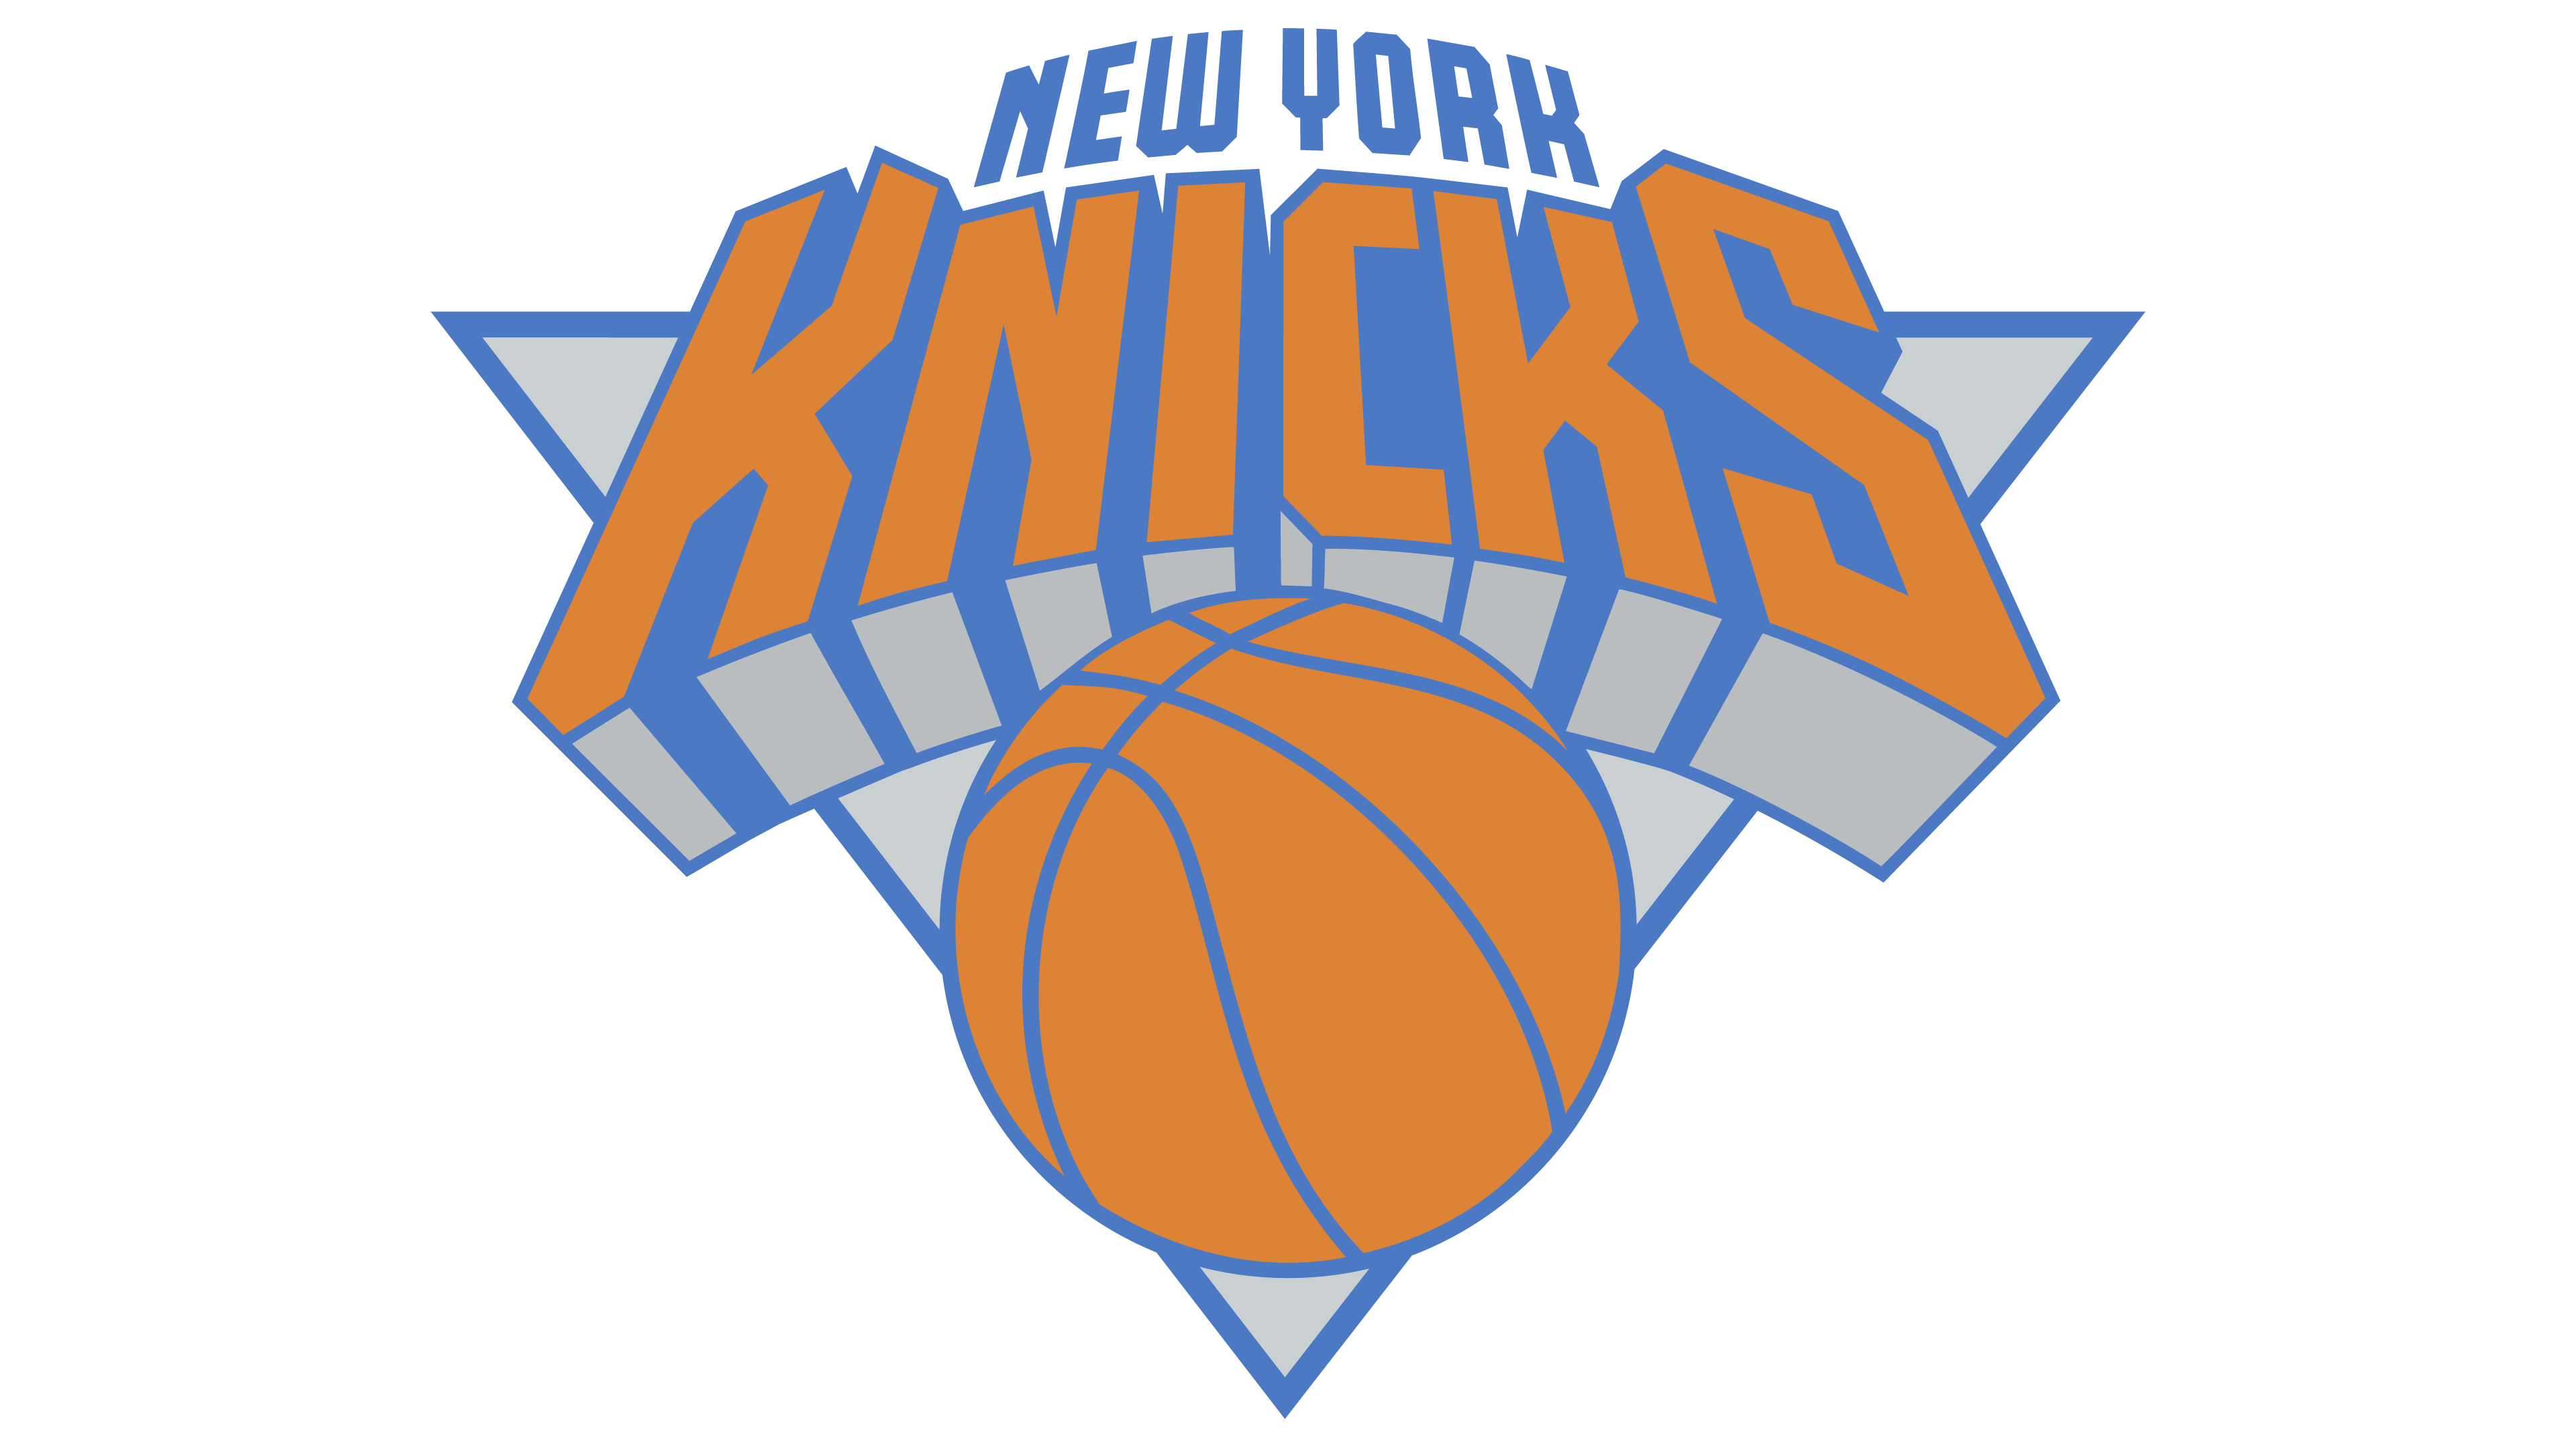 Basketball clipart rgb transparent library New York Knicks logo - Interesting History of the Team Name and emblem transparent library